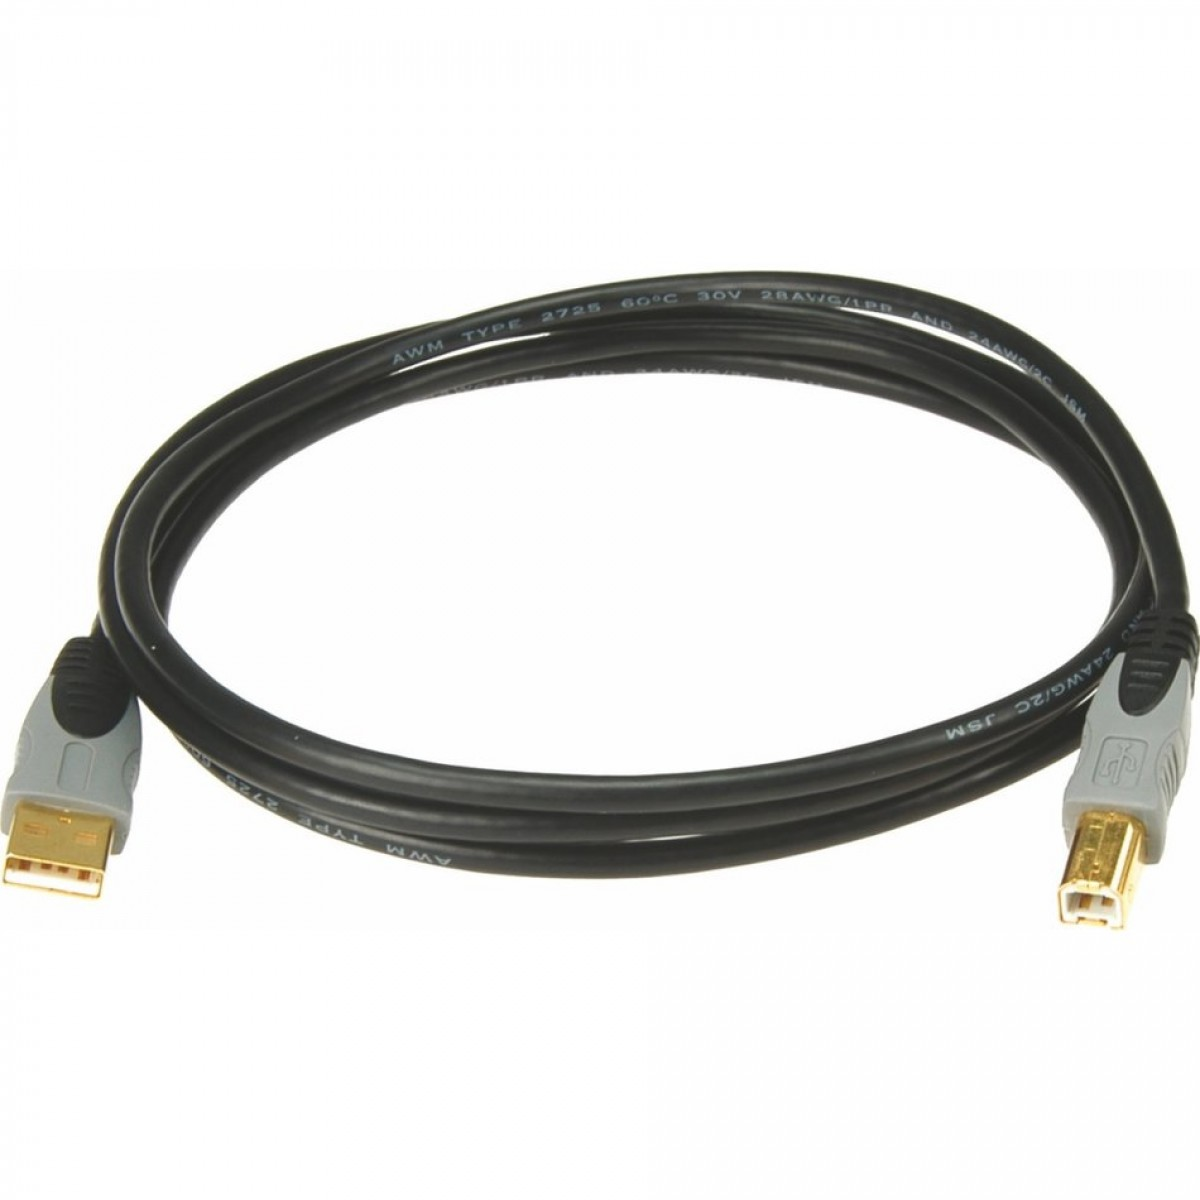 Klotz USB-AB4 high speed USB 2.0 cable A